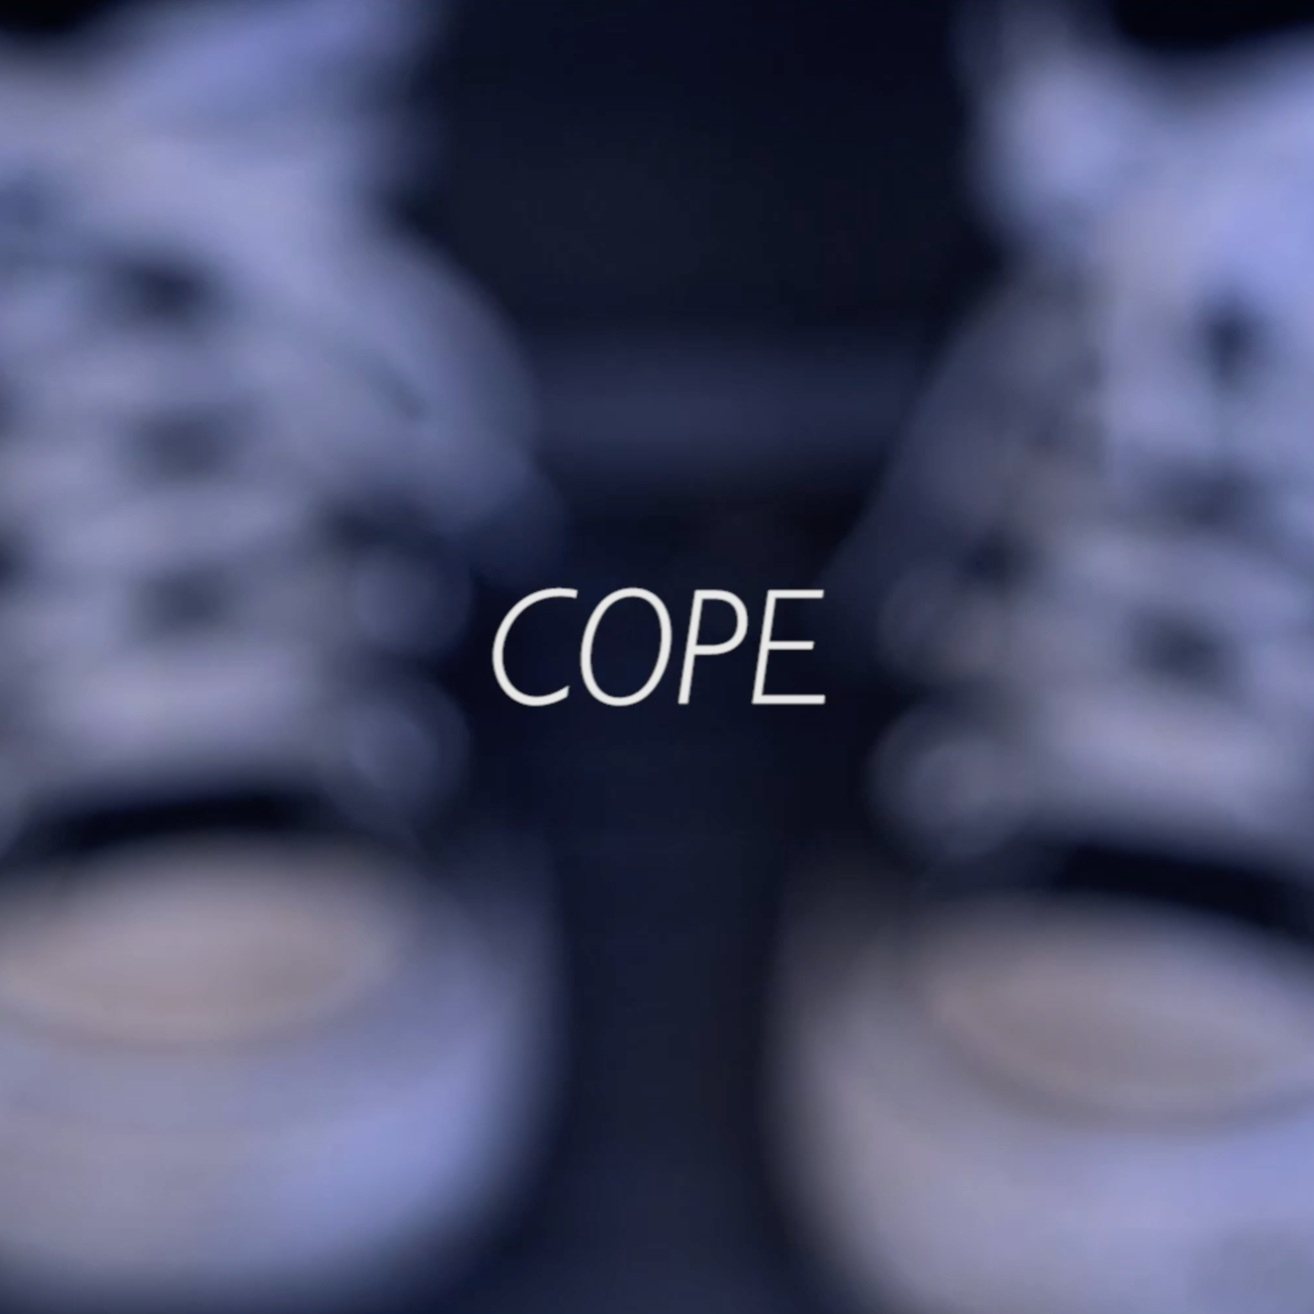 Cope  Single Shot Video